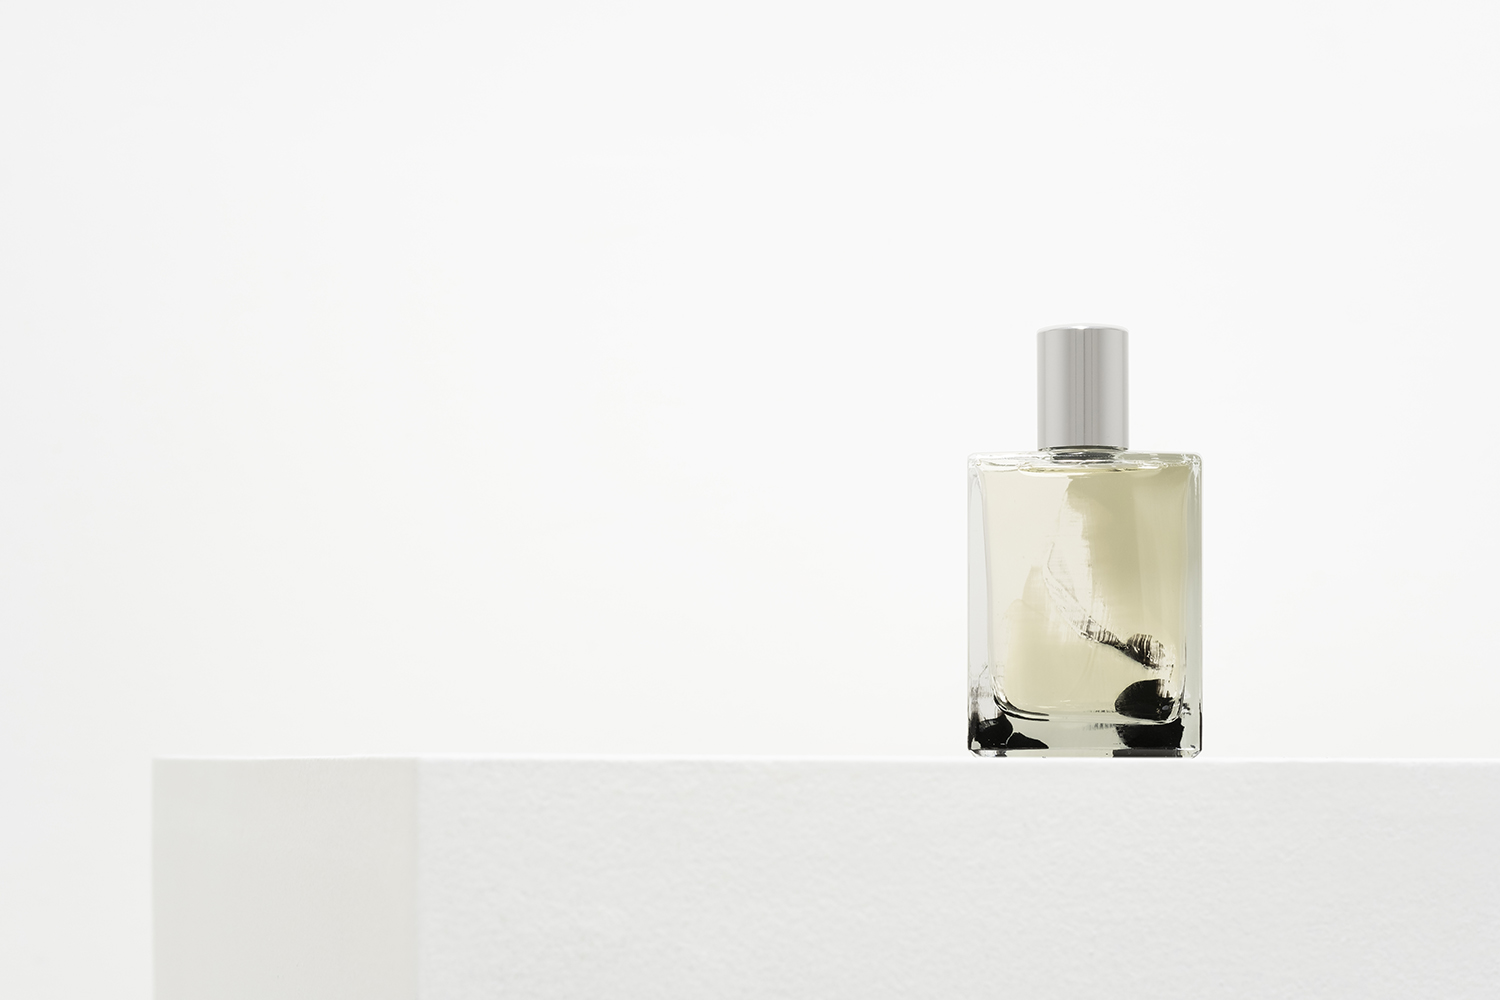 Post Tenebras Lux Fragrance By Folie A Plusieurs and Mark Buxton Le Cinema Olfactif Film Series